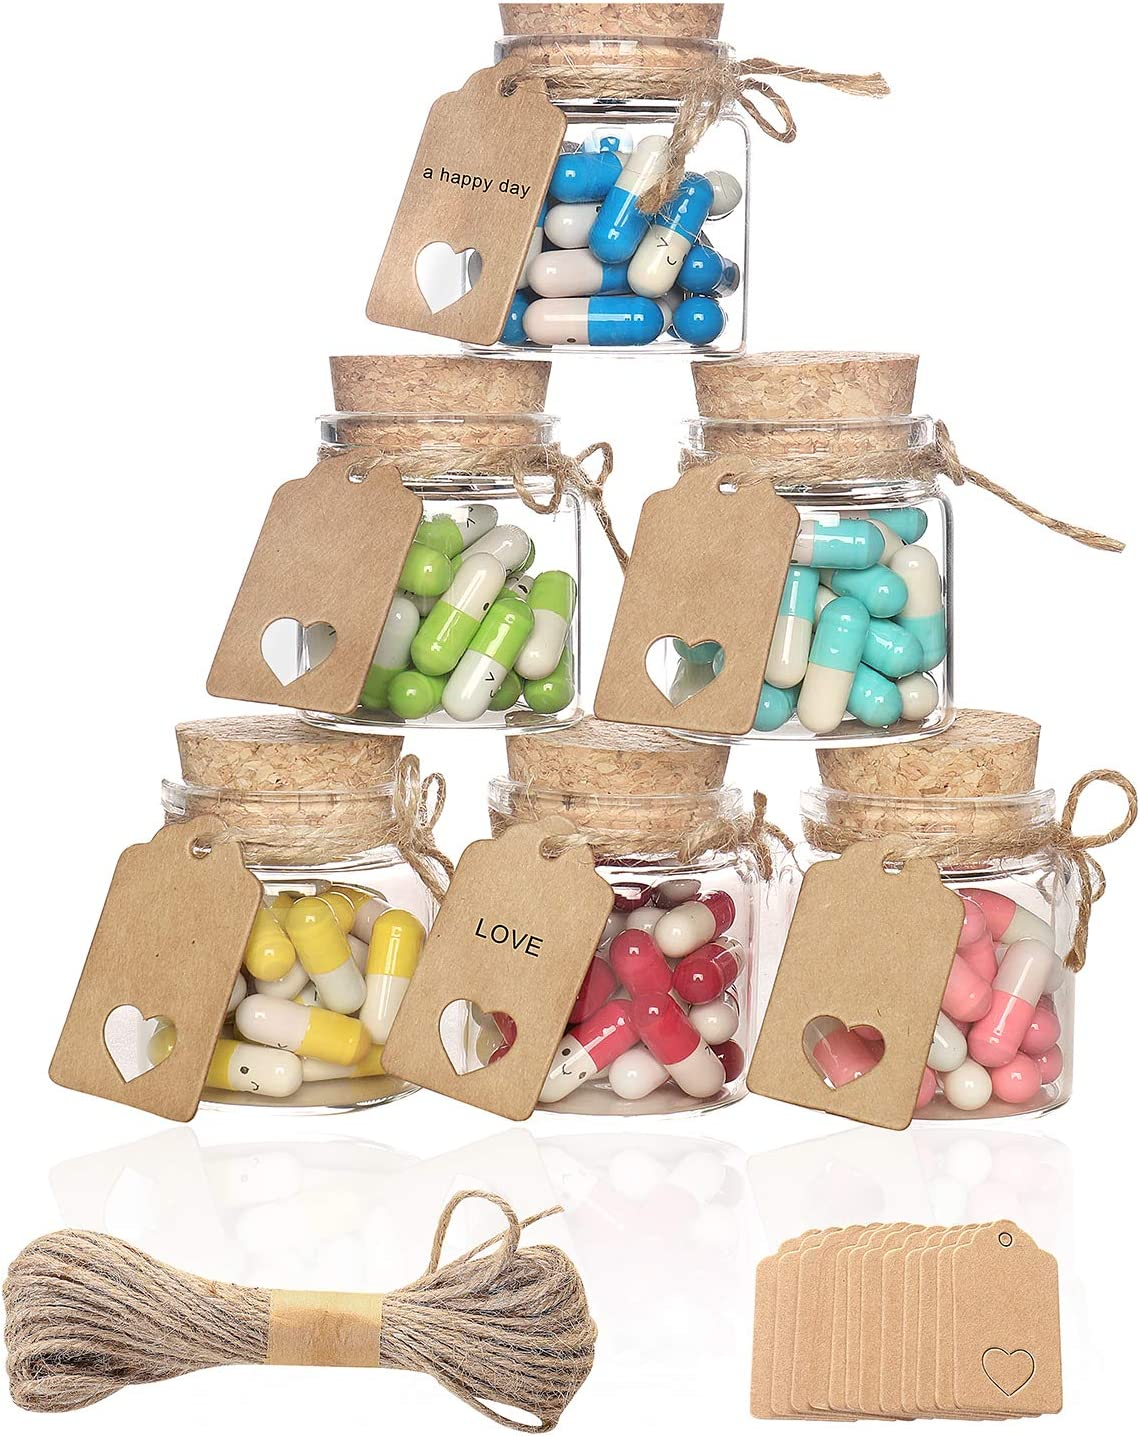 VOFUWS 12pcs 1.7oz Mini Glass Cork Bottles Small Favor Bottles with Cork Lids Clear Glass Container 12 Tags and 10-Meter Twine (2.36inchx1.85inch)